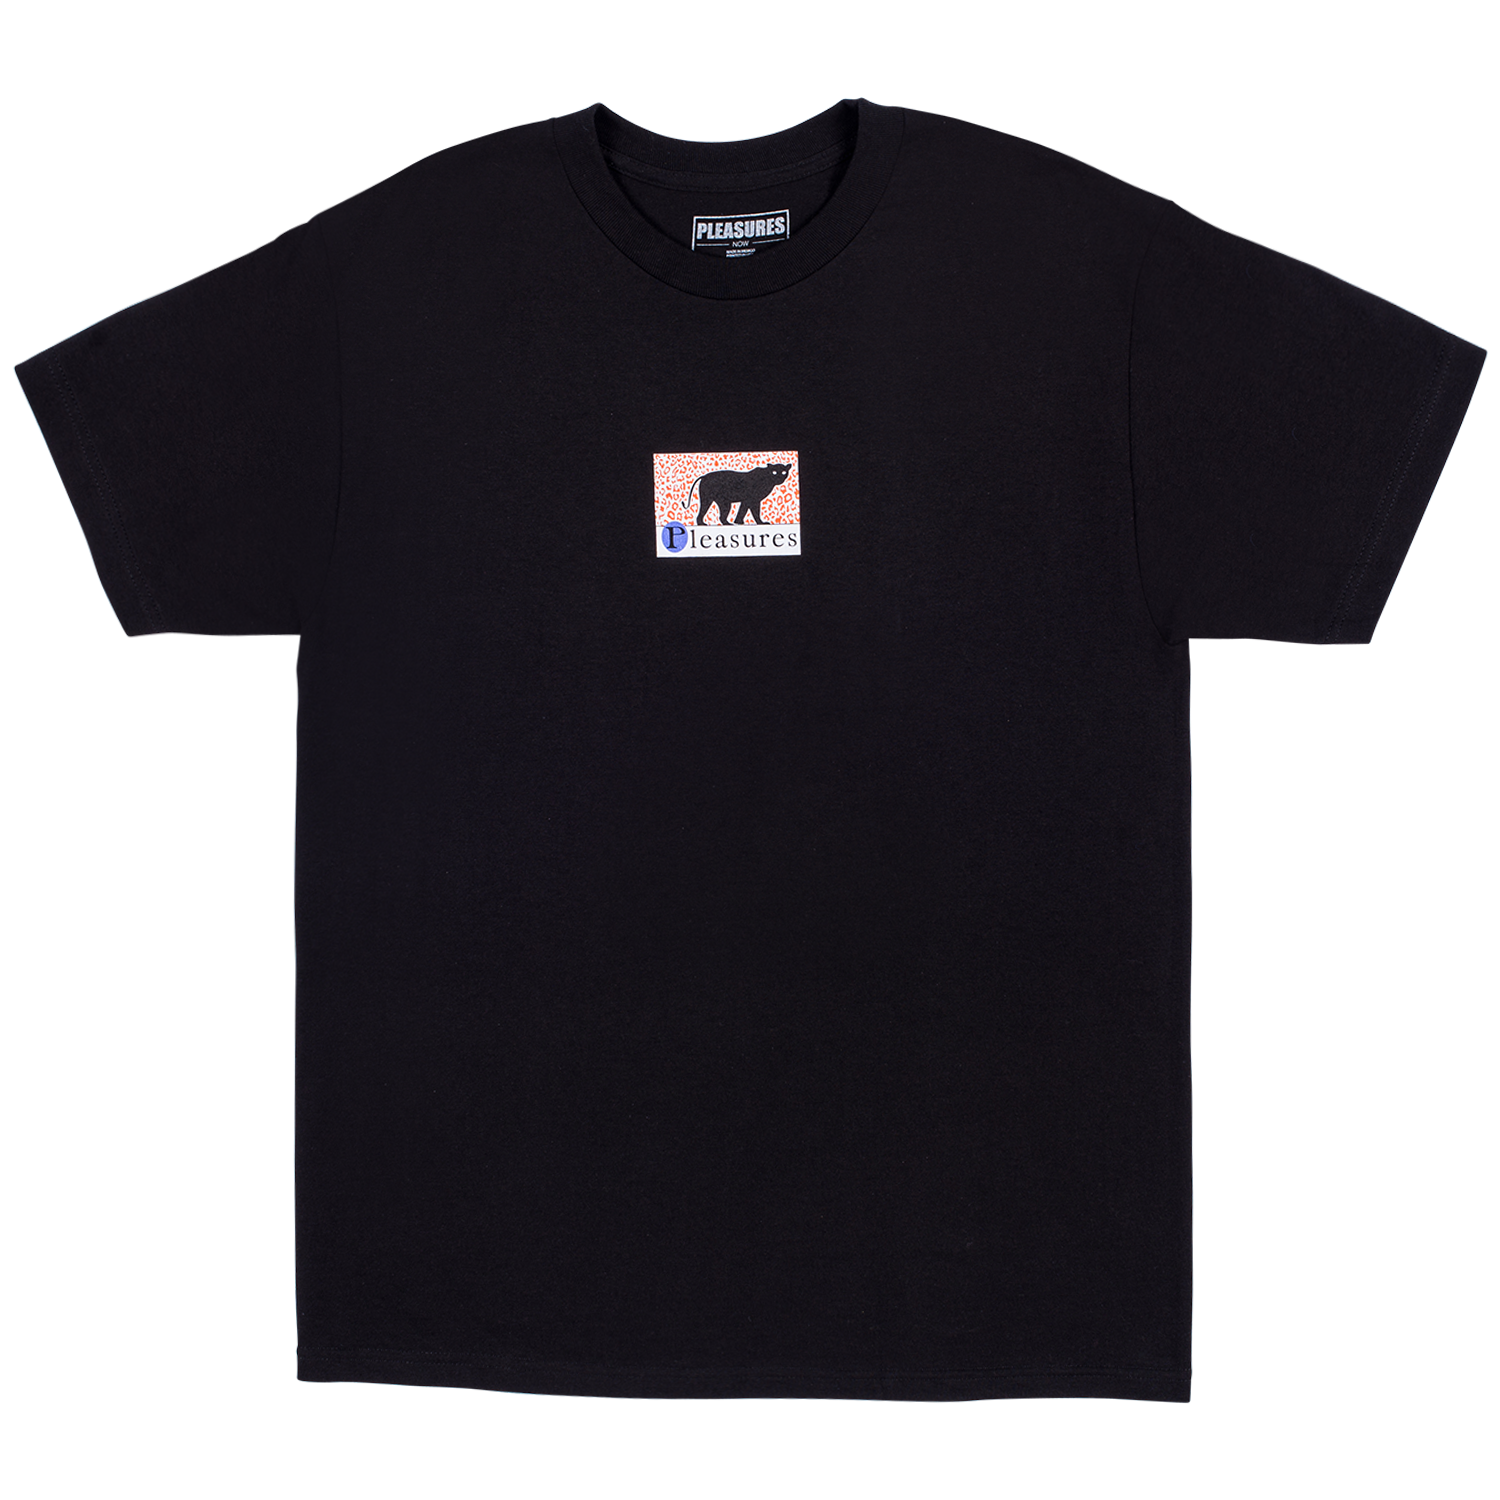 Pleasures Big Cat T-Shirt (Black)